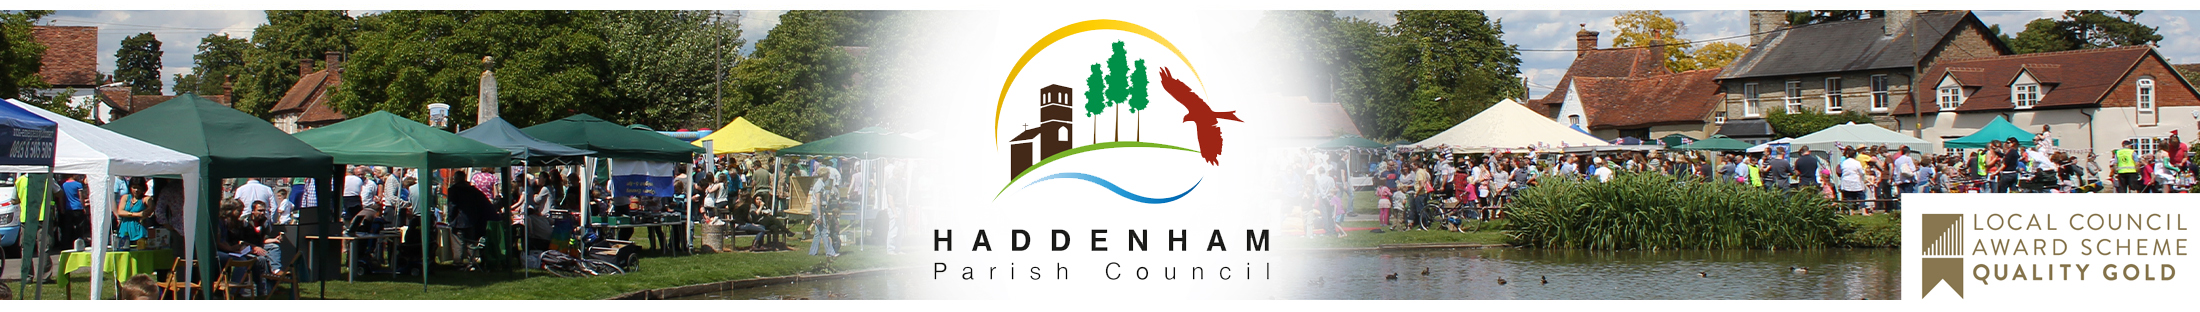 Header Image for Haddenham Parish Council